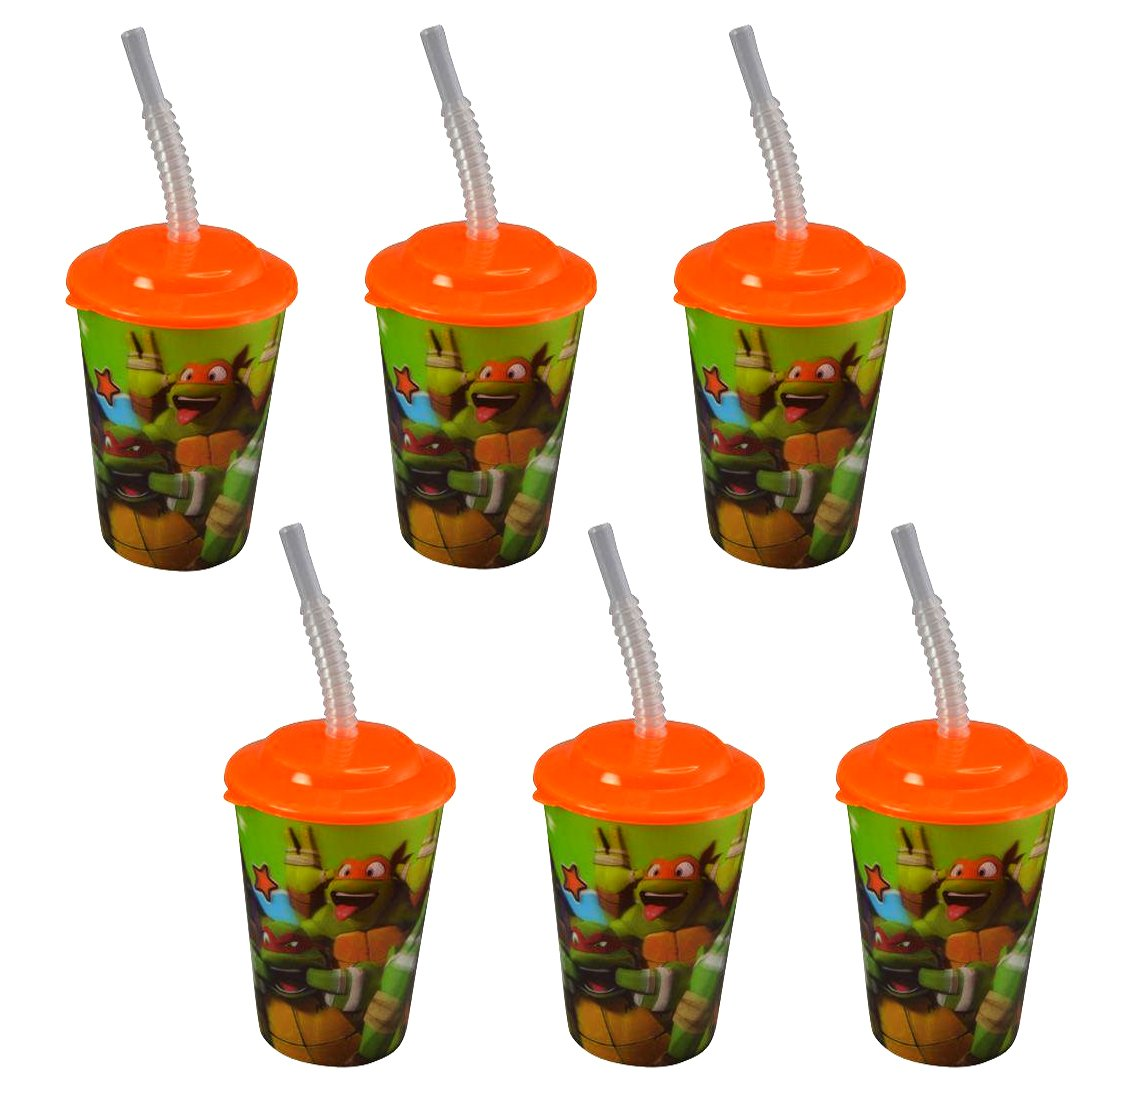 Teenage Mutant Ninja Turtles 12-ounce Lenticular Tumbler Cups with Lids and Straws, 6-Pack